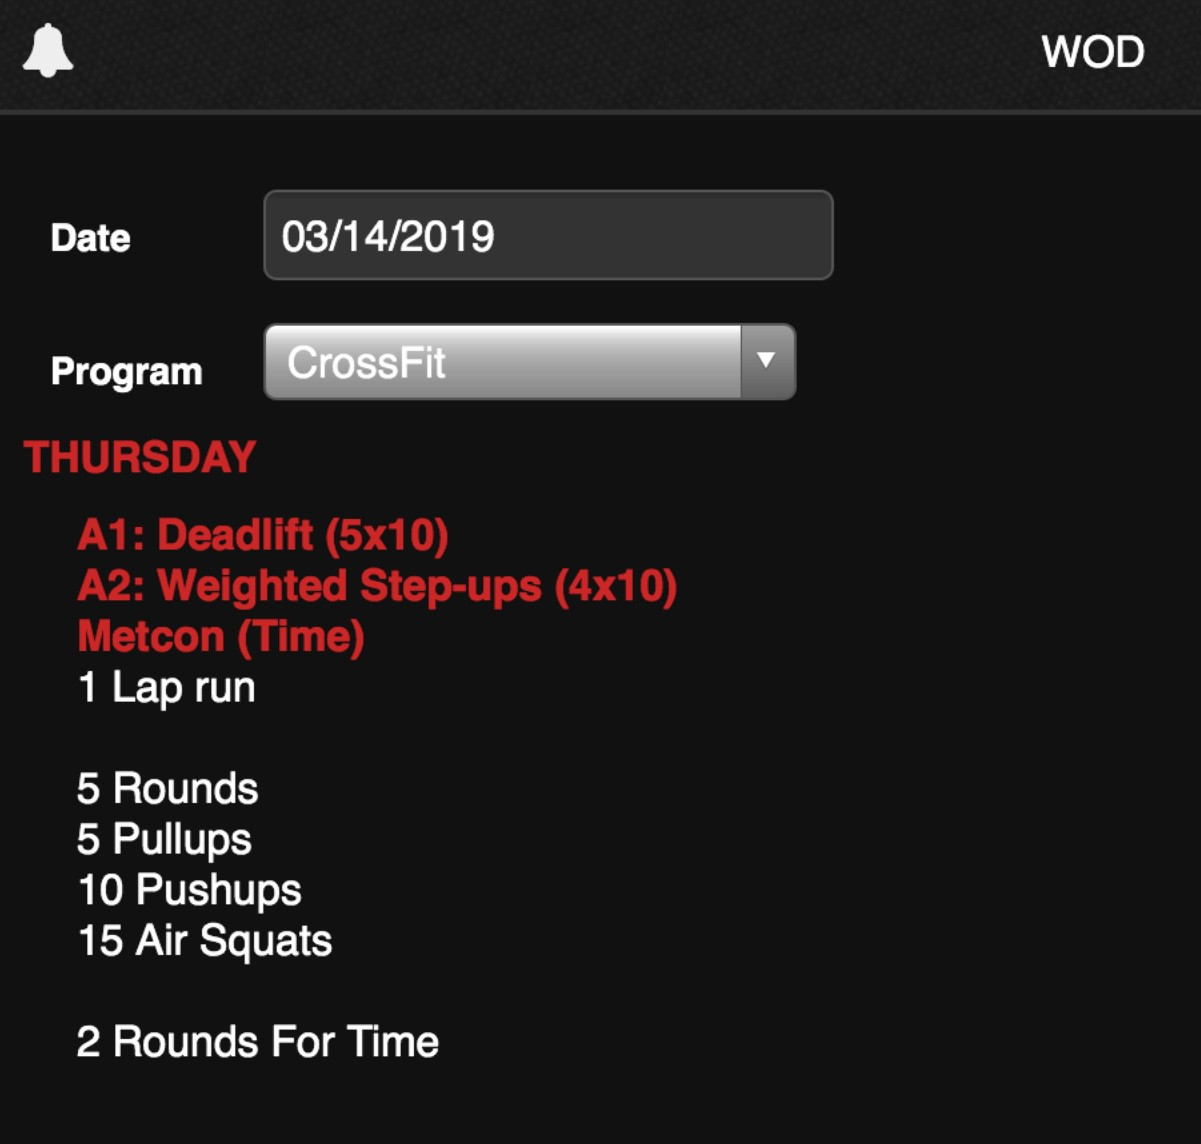 Crossfit WoD from Thursday - 3/14/19